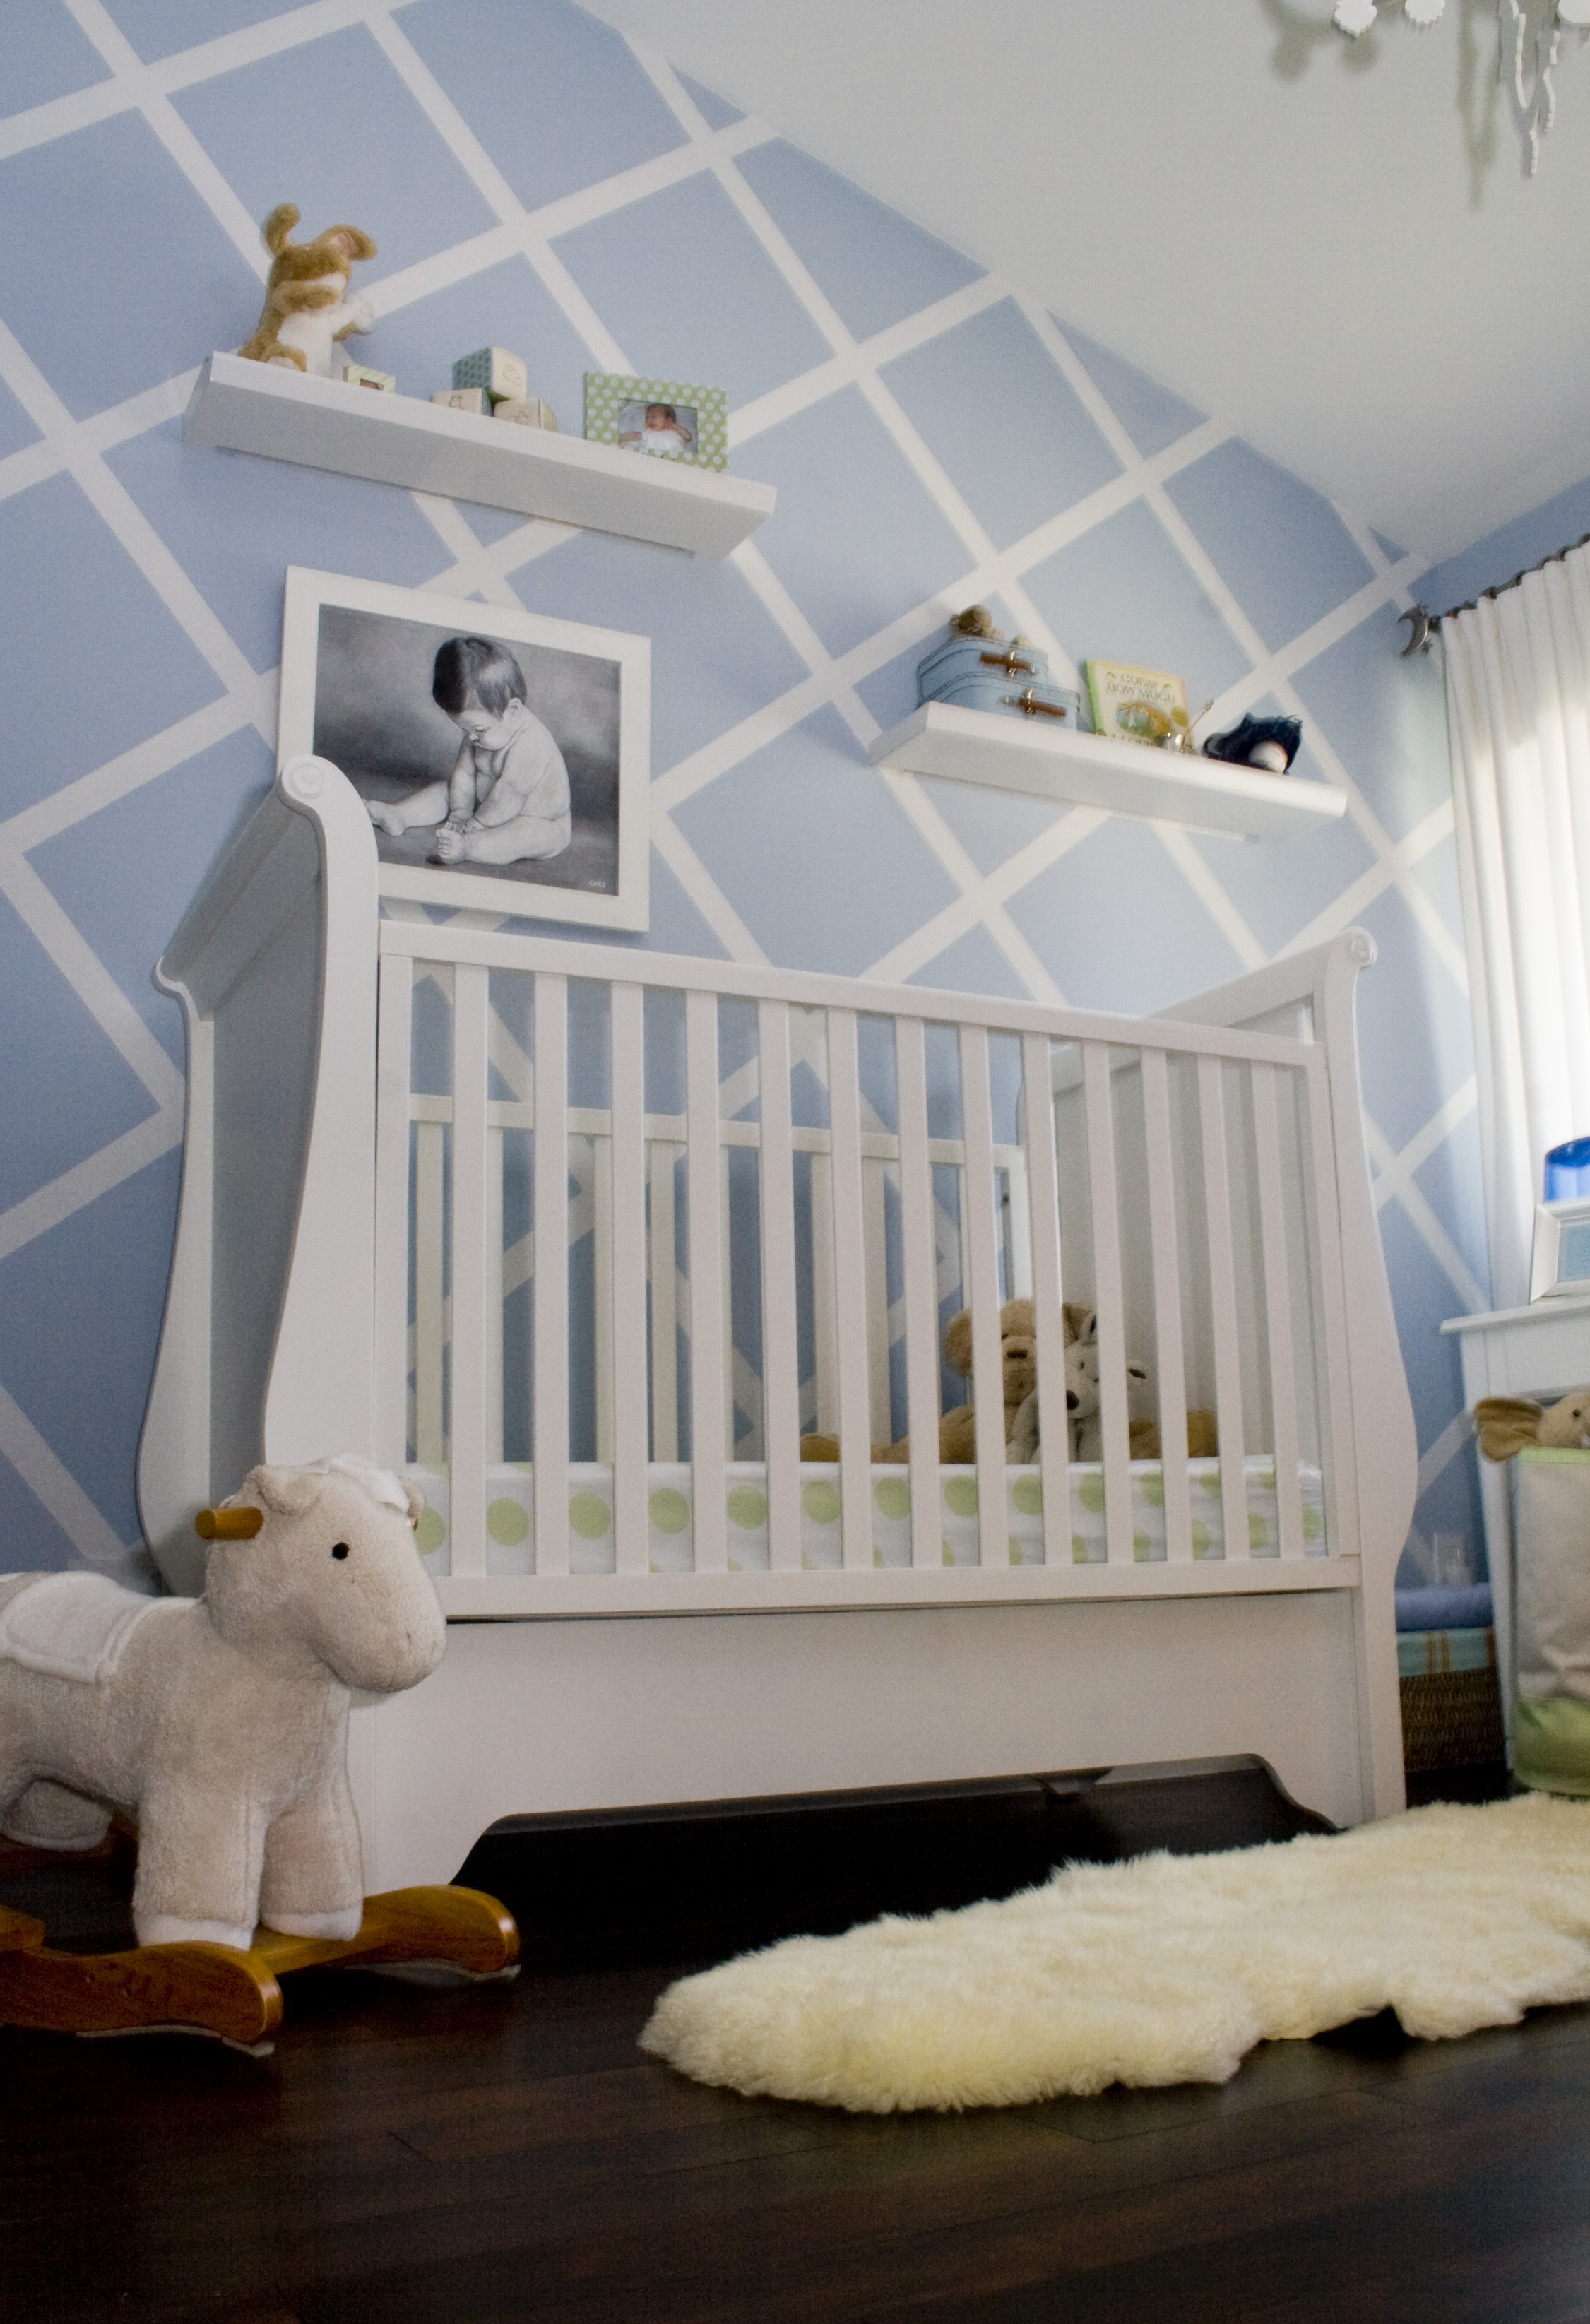 Baby Blue with Stenciled Accent Wall - Project Nursery